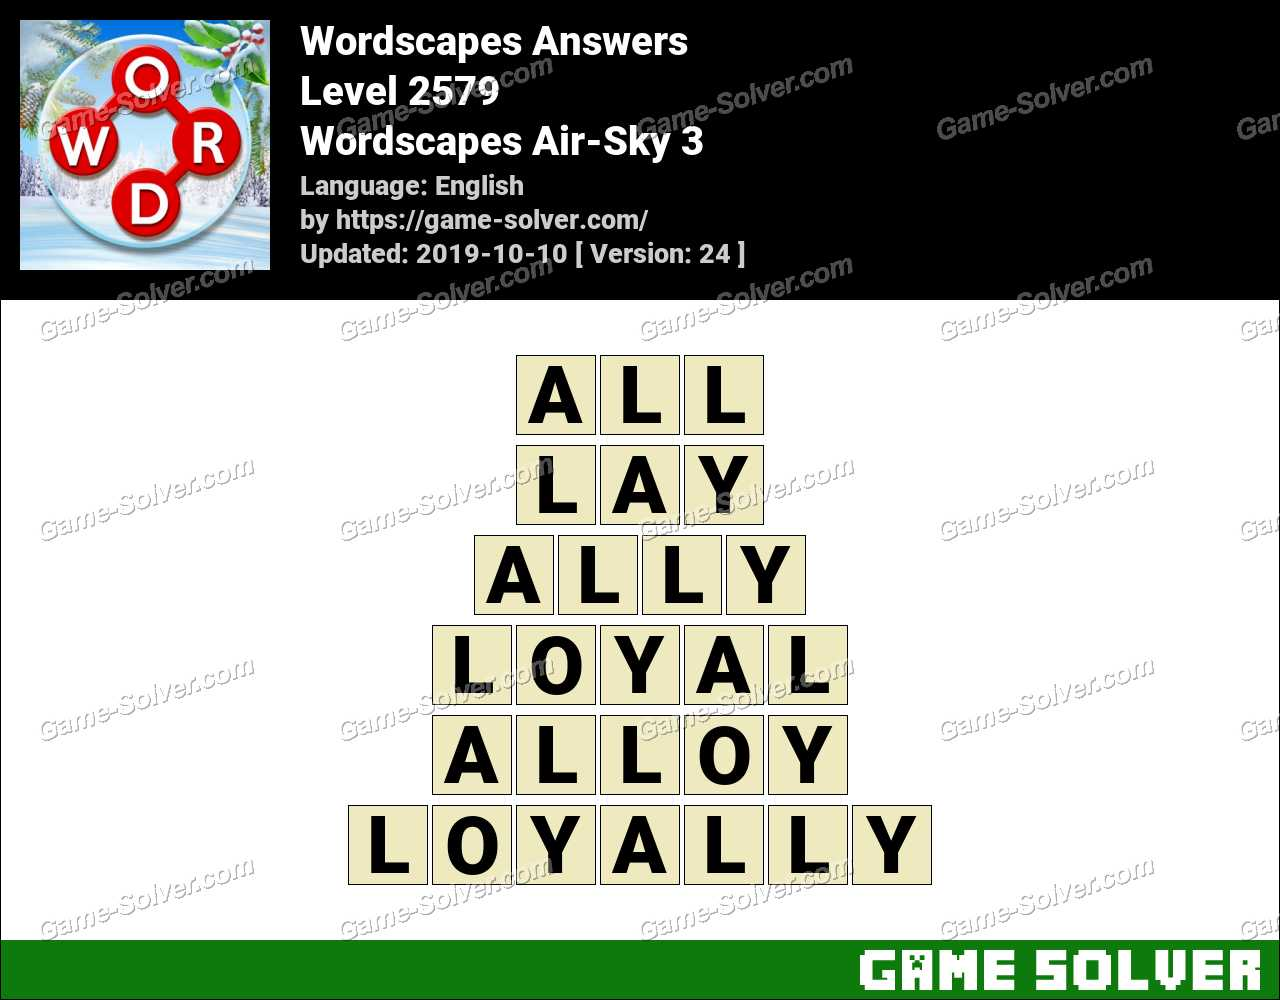 Wordscapes Air-Sky 3 Answers